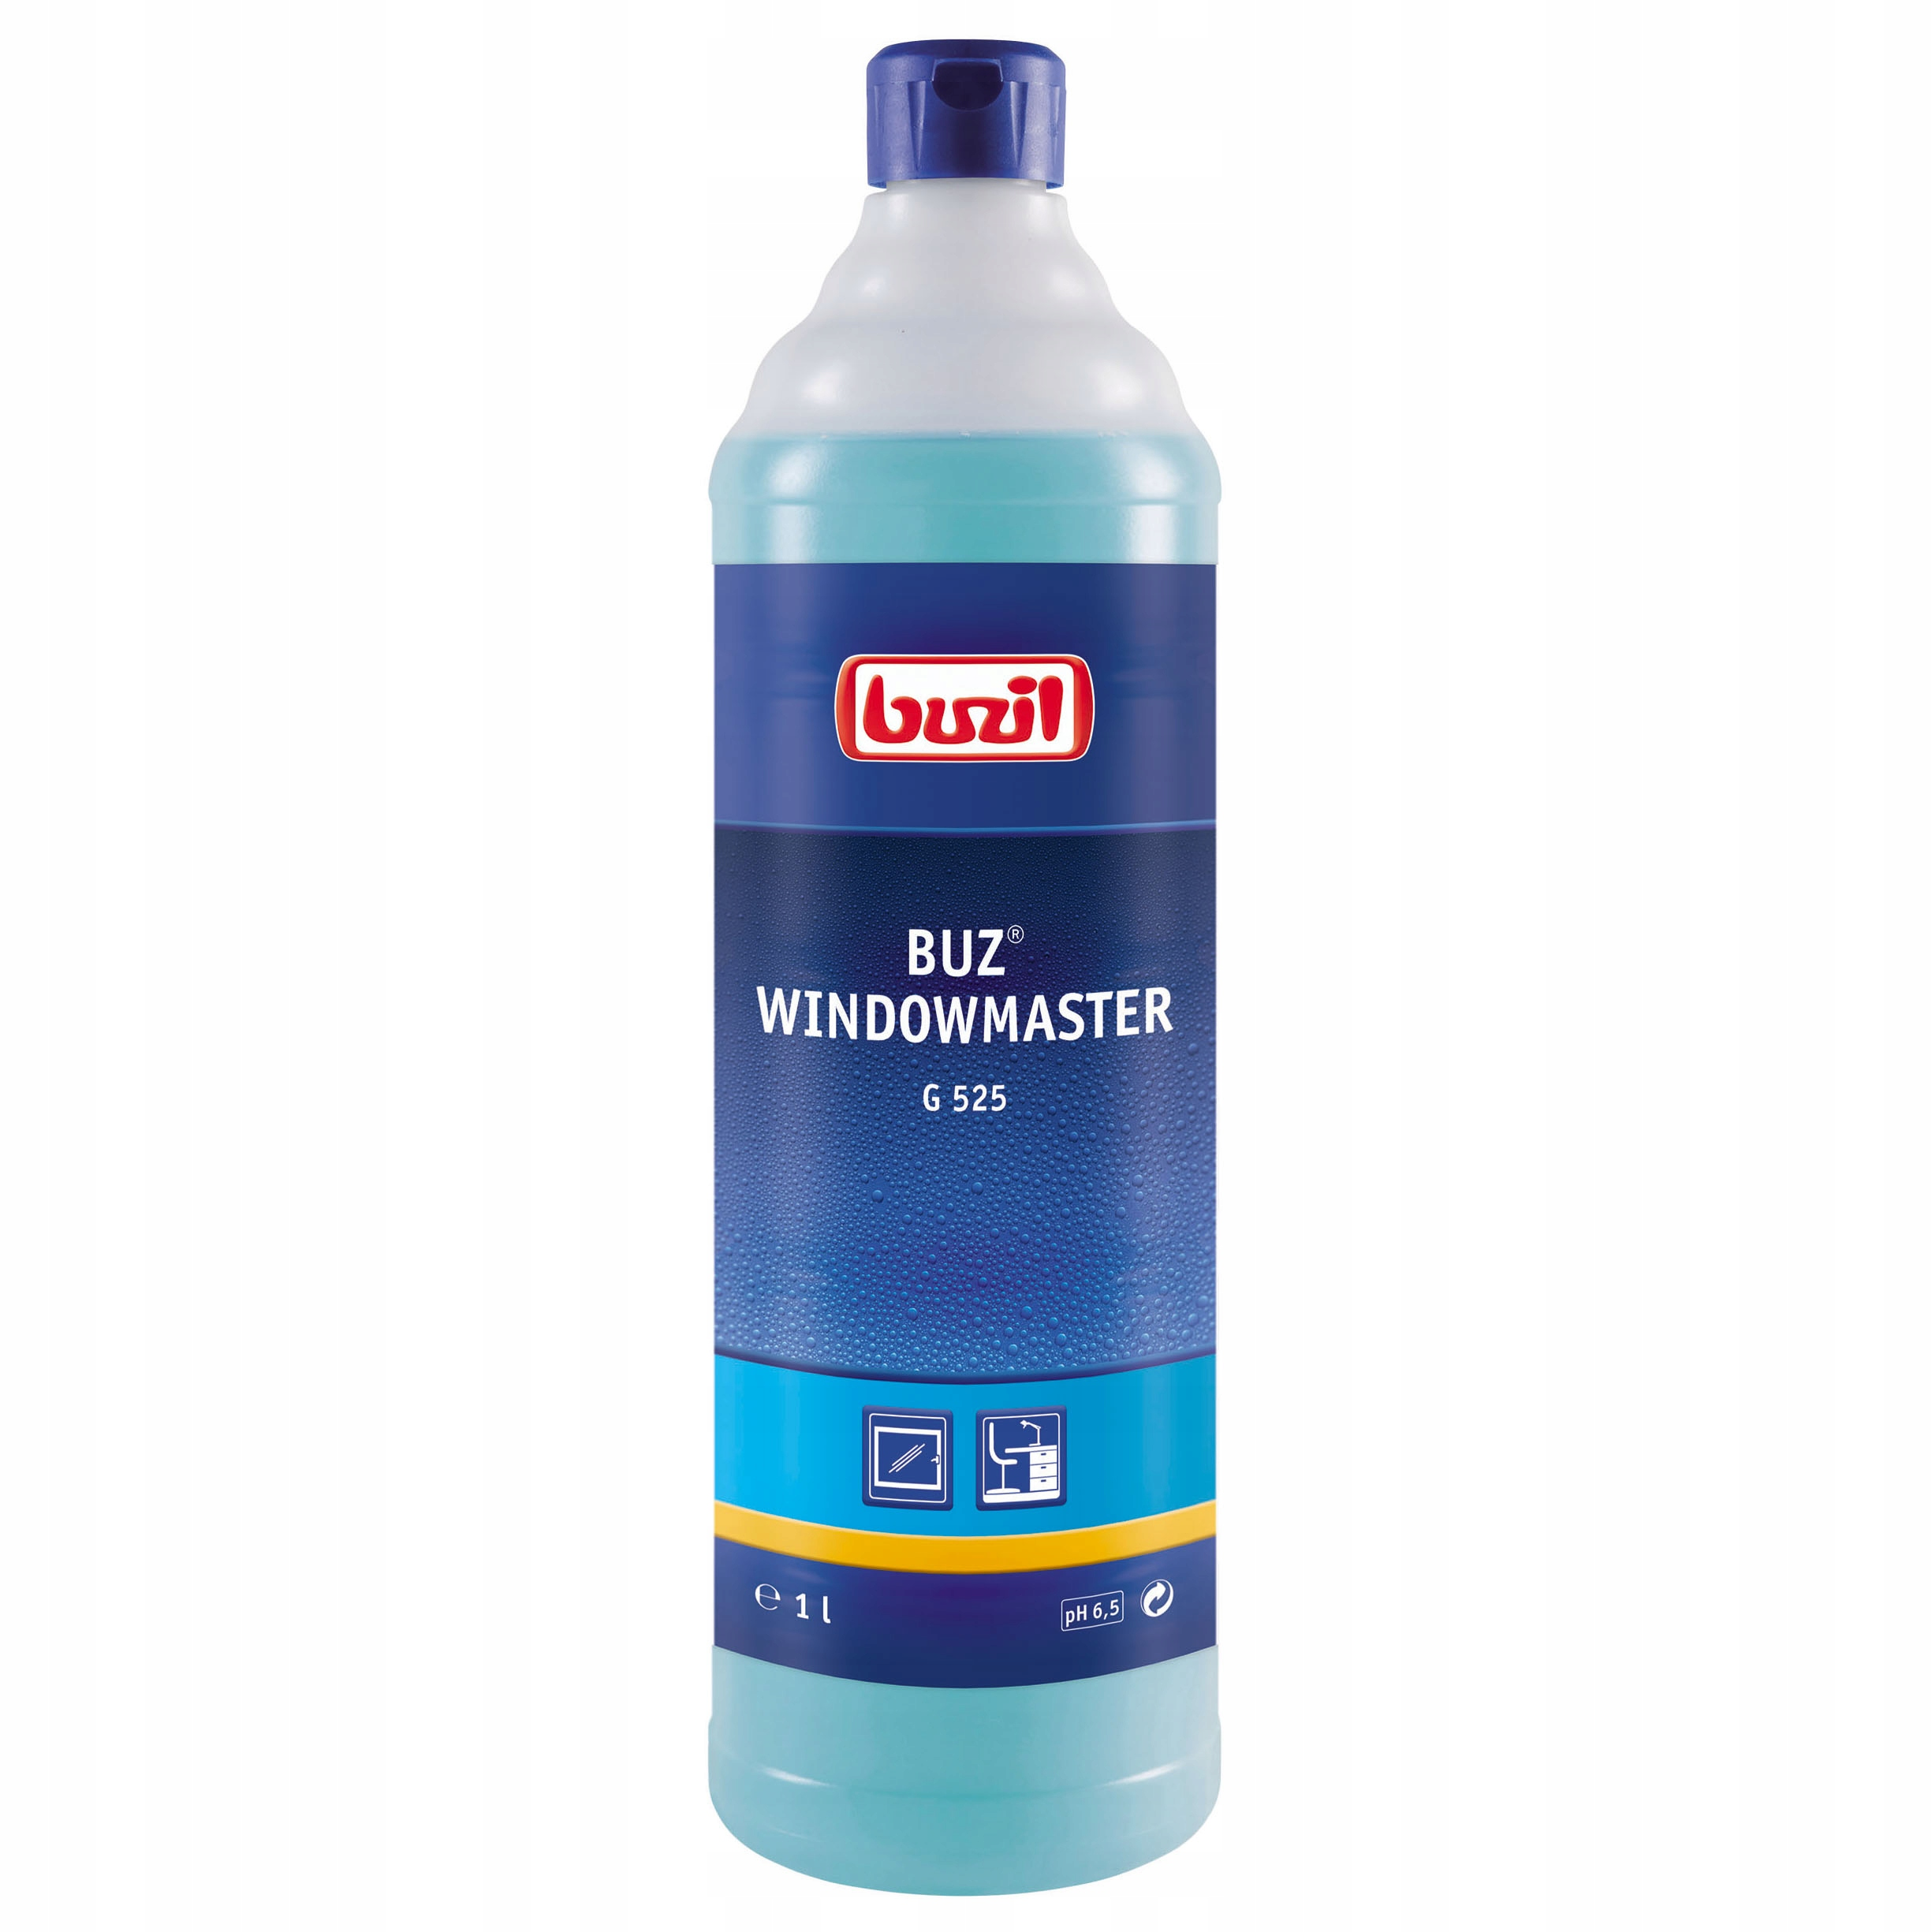 BUZIL CLEANING CONCENTRATE CONCENTRATE CONCENTRATE CONRATE G590590 G590590 CONCENTRATE CONRATE G590